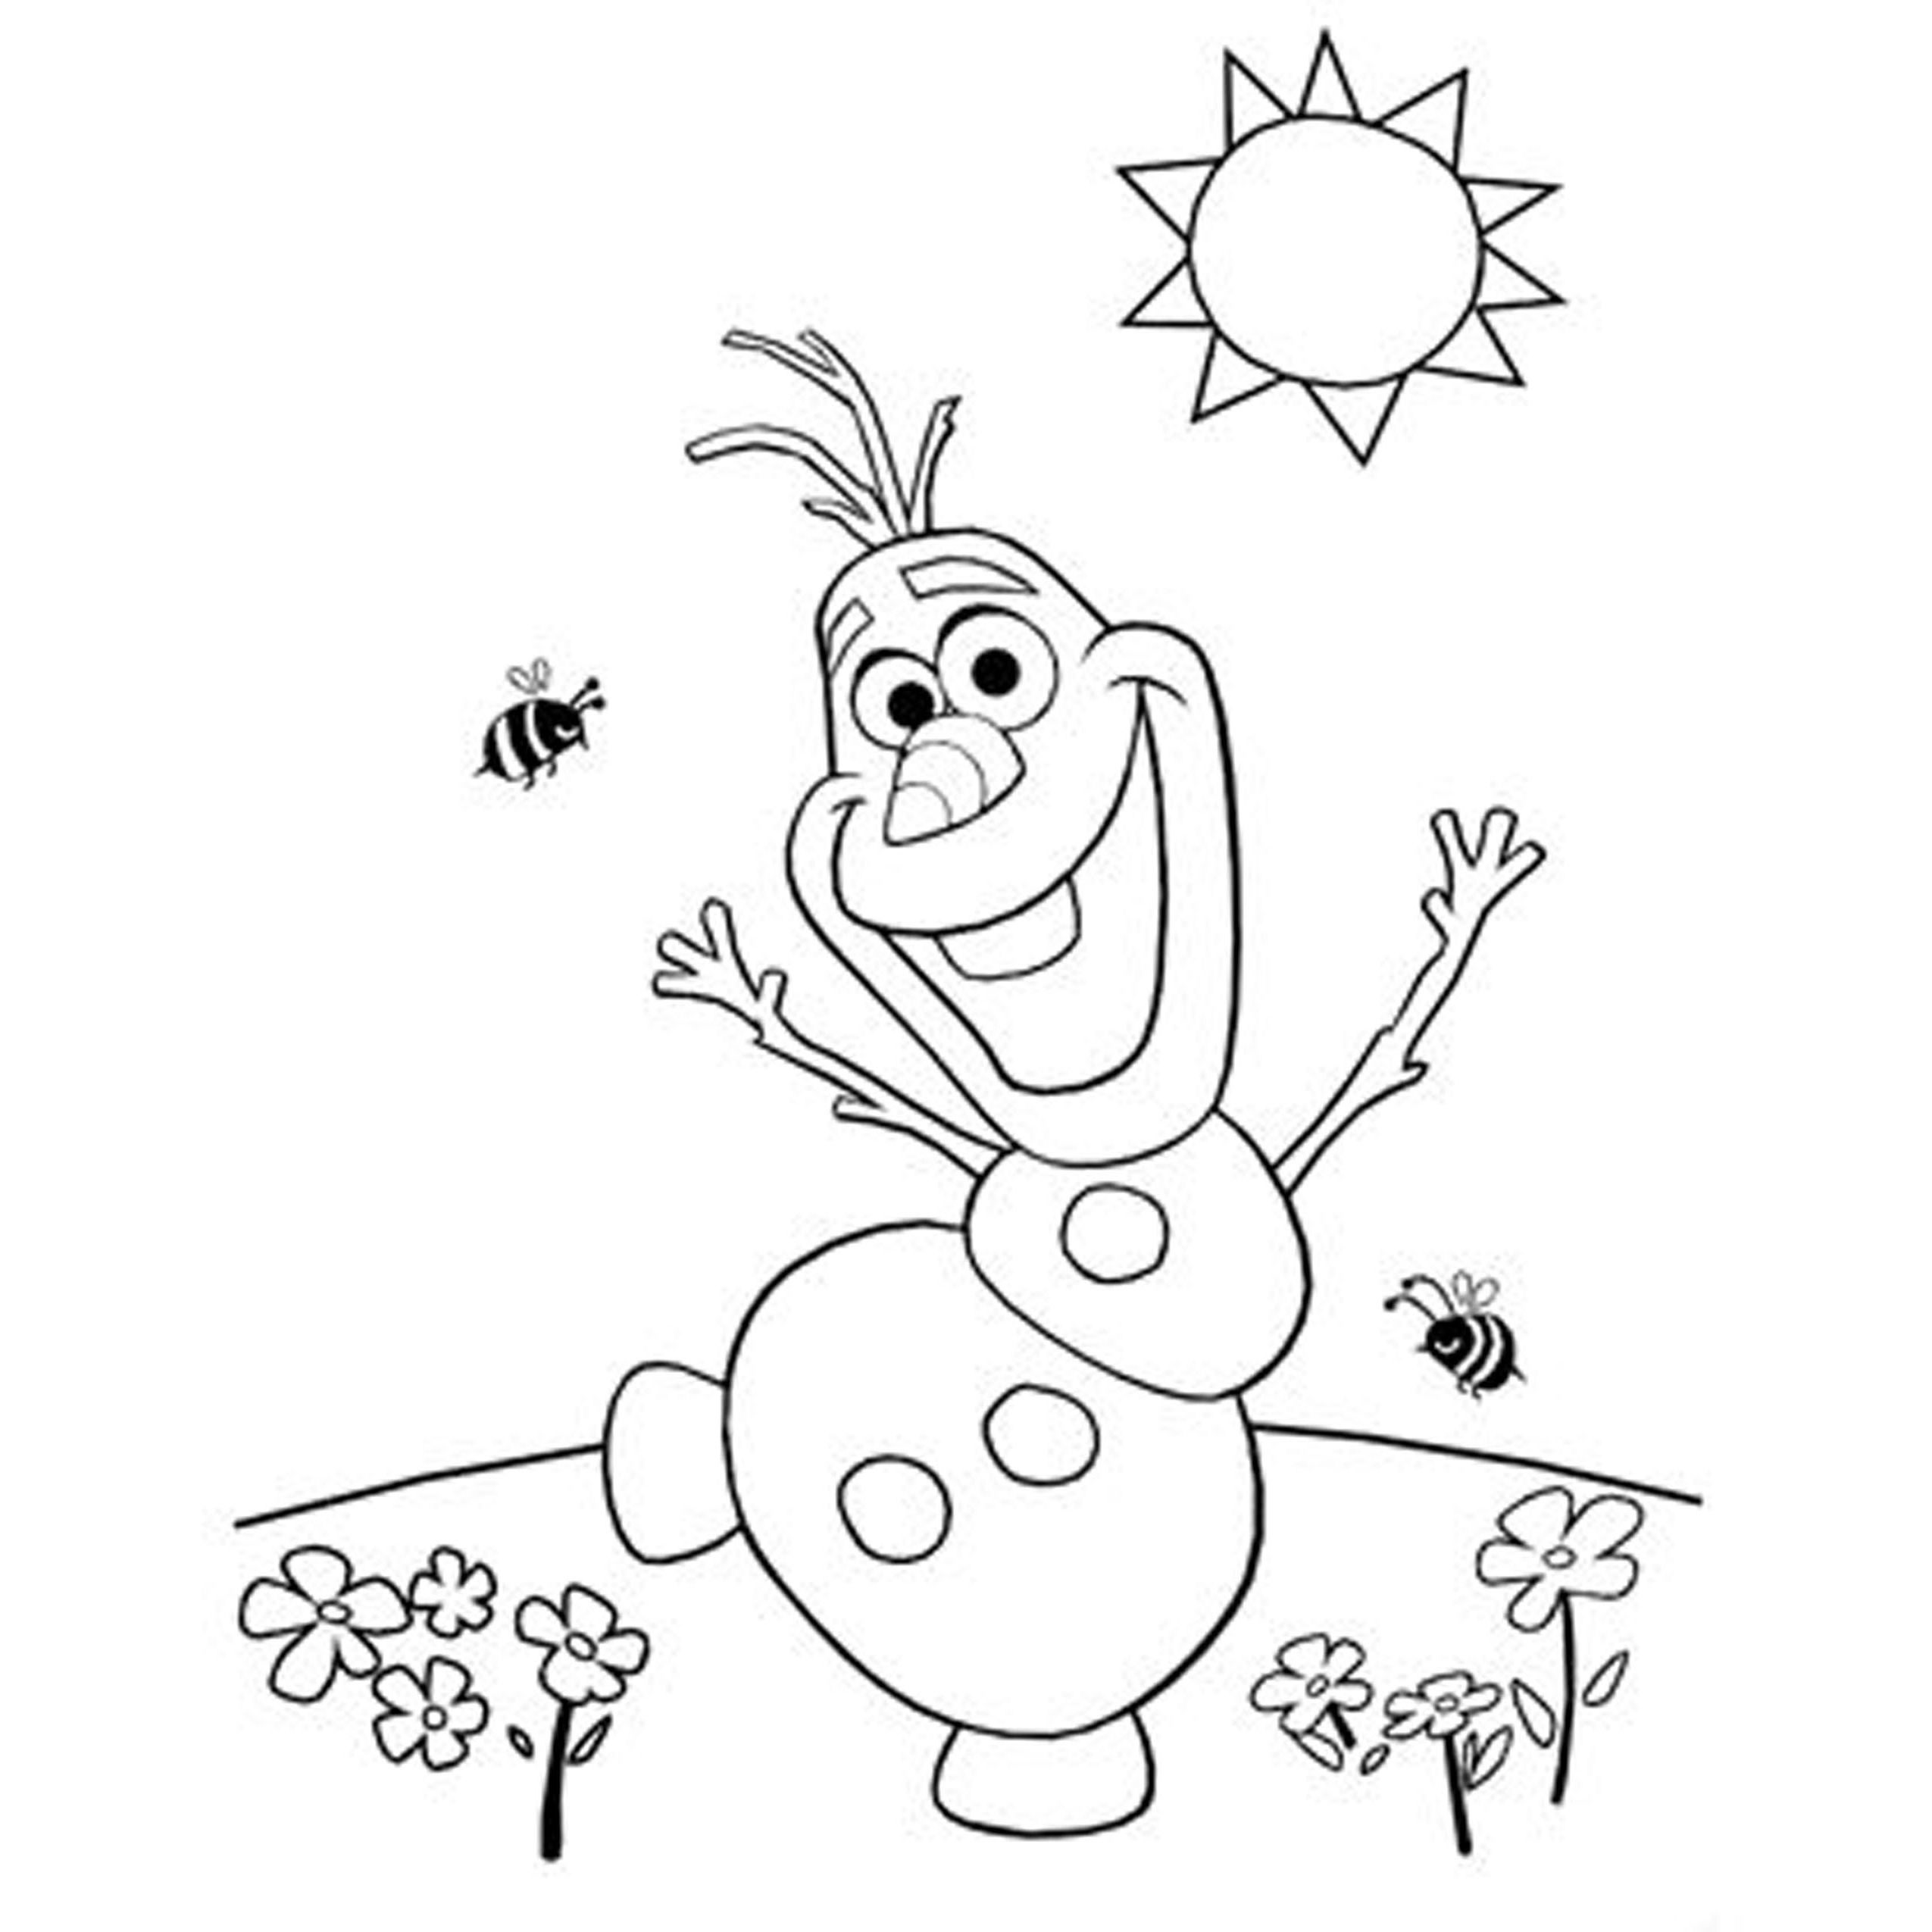 frozen coloring books frozen 2 coloring pages at getcoloringscom free books frozen coloring